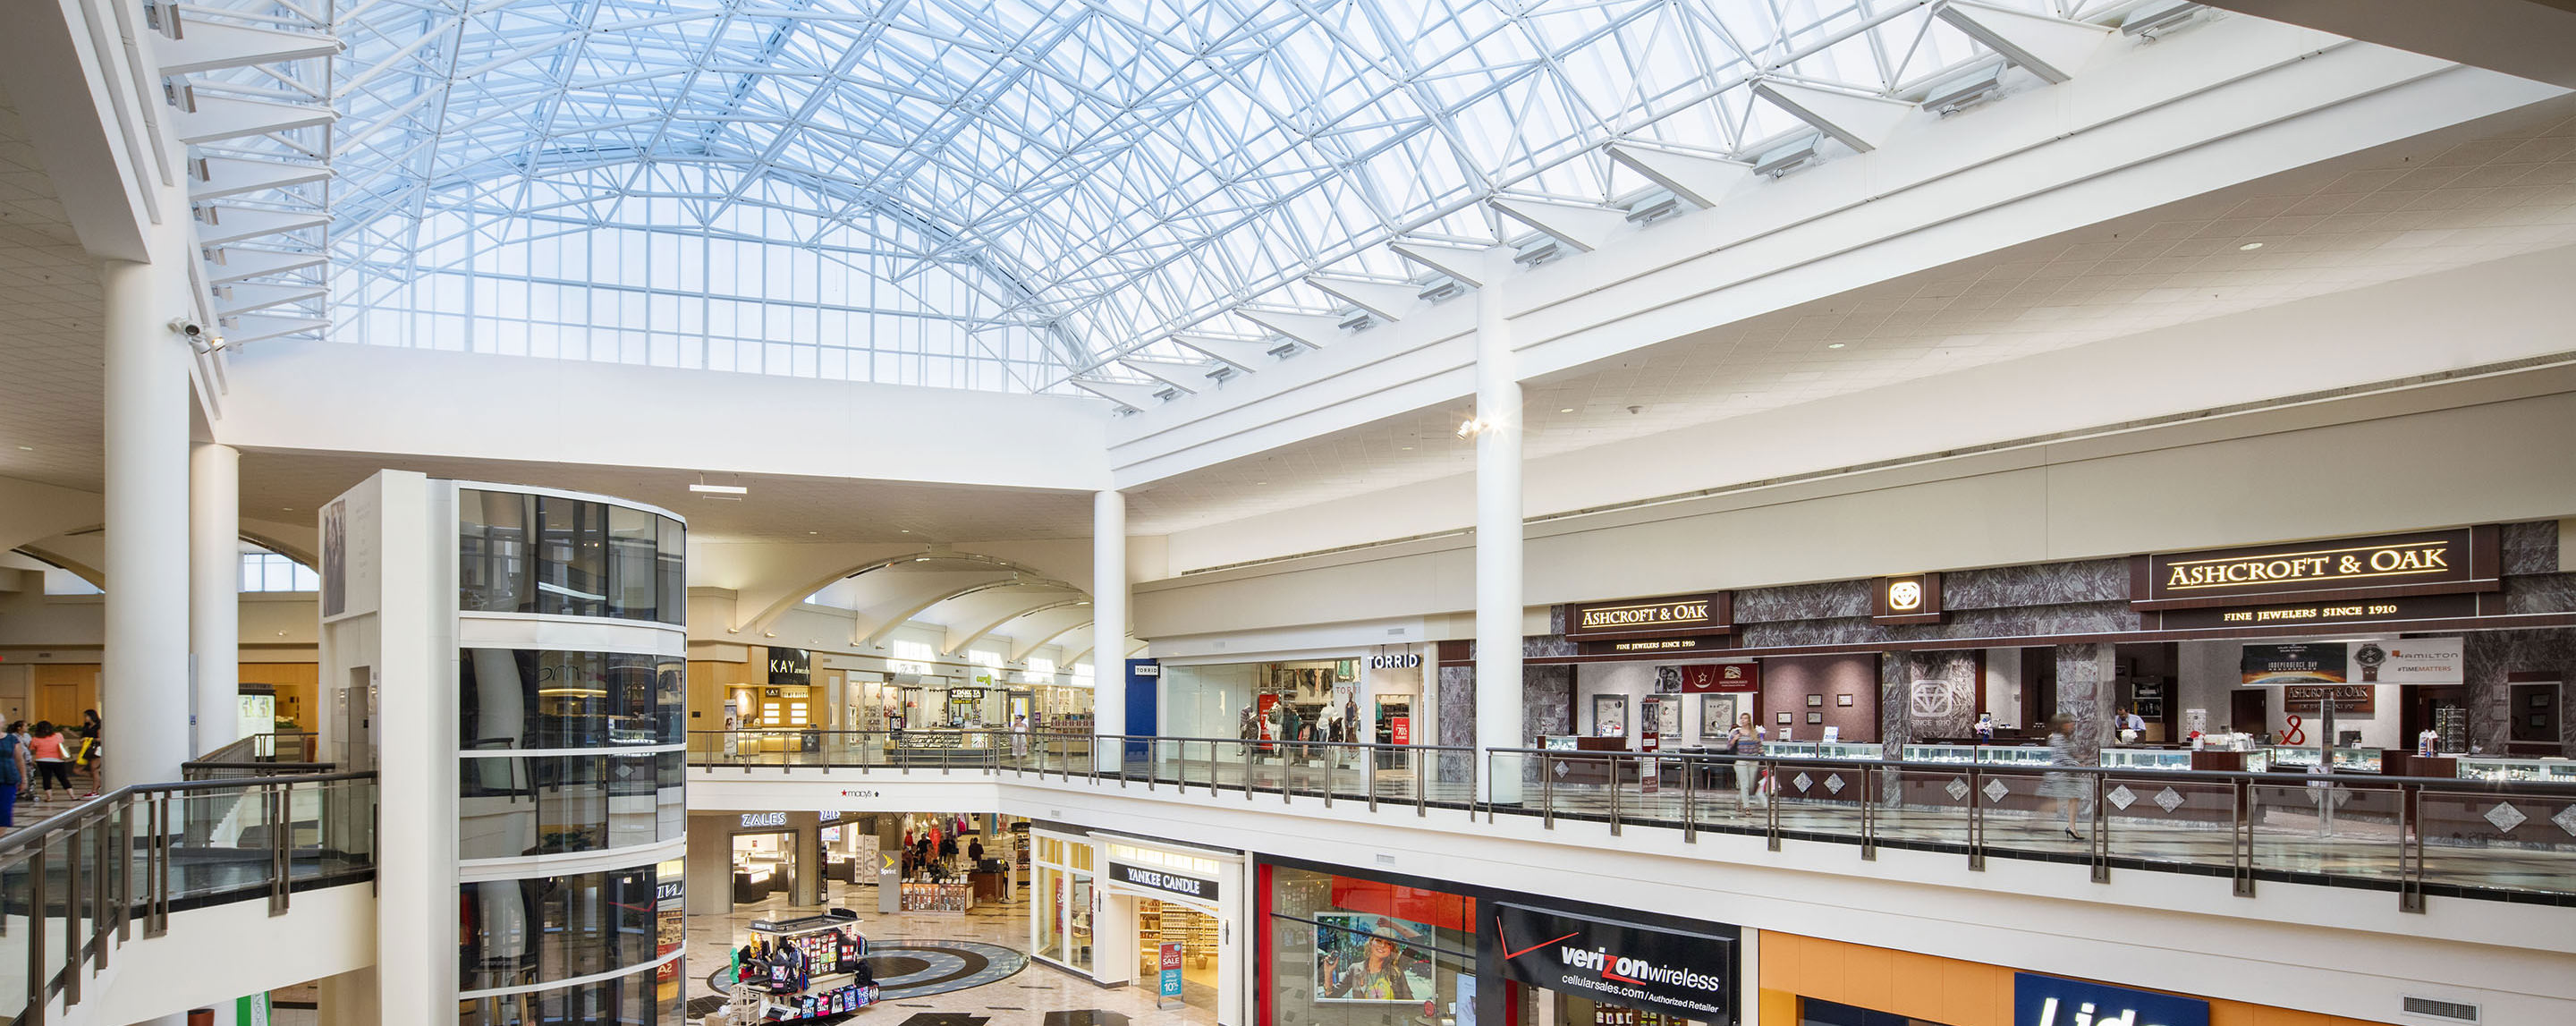 In the interior Florence Mall atrium, the glass ceiling allows the sun to shine on store fronts and kiosks on the first level.